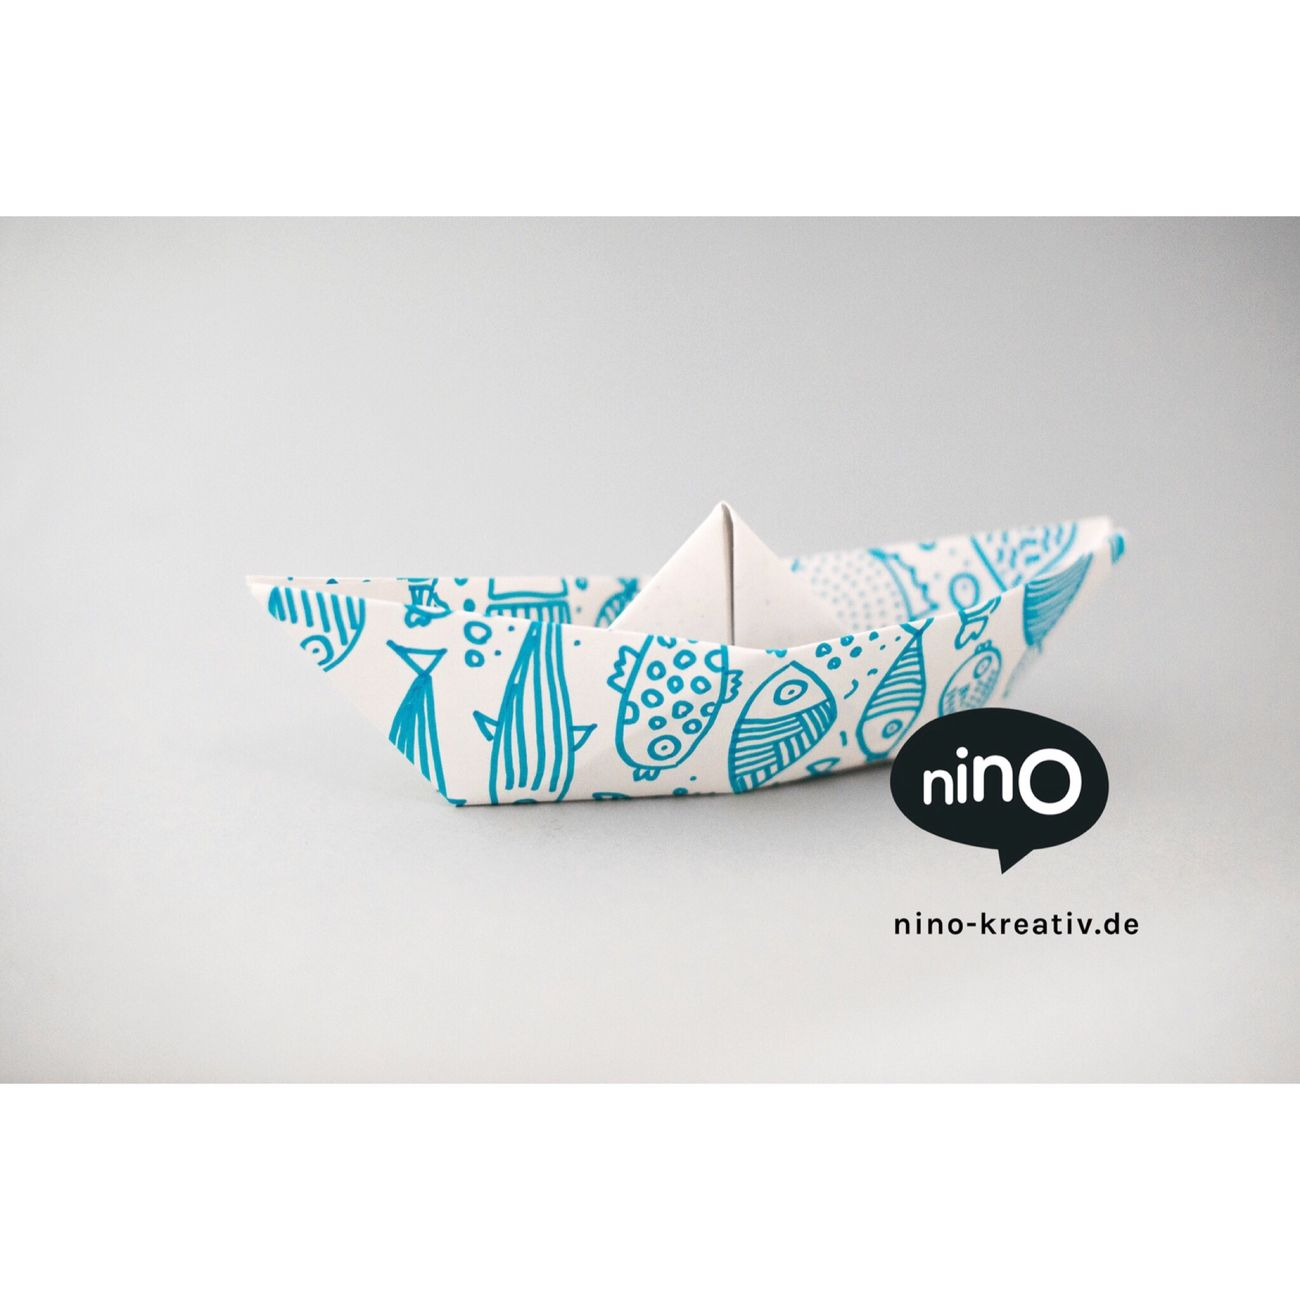 Crafting a paper boat with NINO paper ... www.nino-kreativ.de ... DIY Diy Project DIY At Home Paper Papercraft Brand Kids Handmade Selfmade School Schule Doityourself